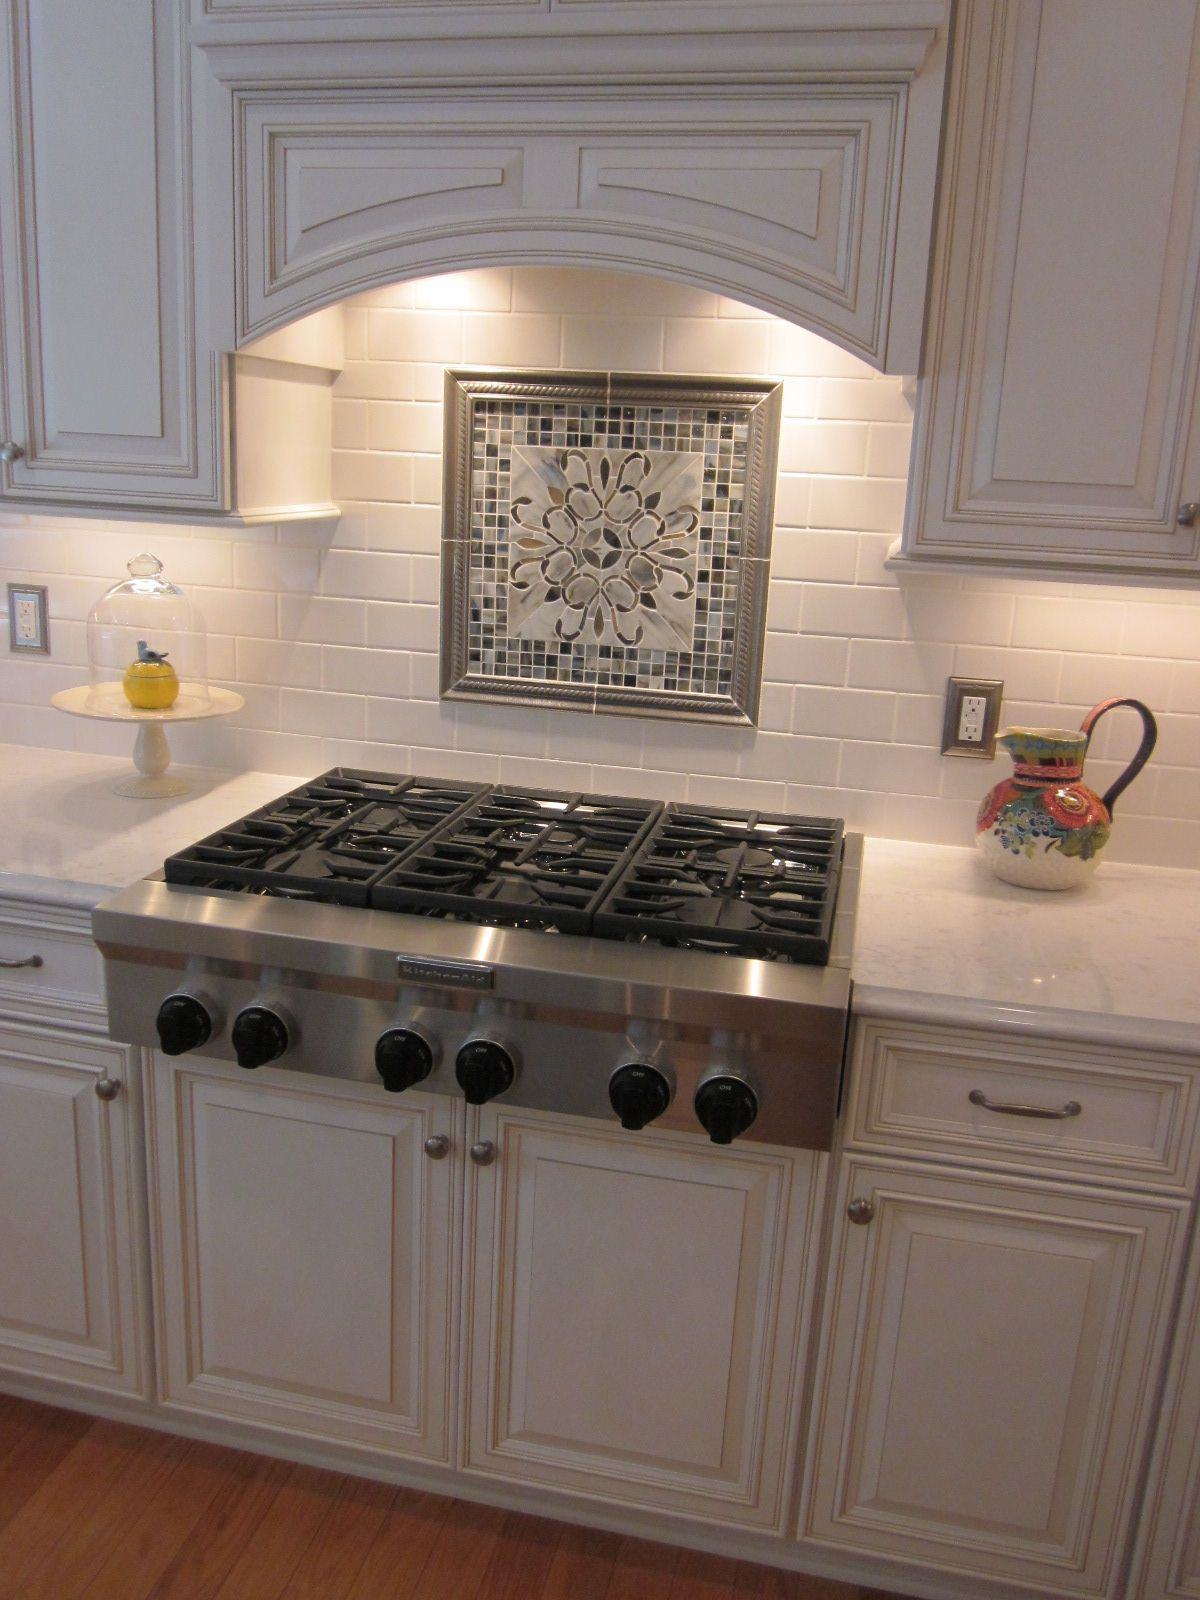 Decorative Tile Backsplashes In Hanover Pa In 2020 Kitchen